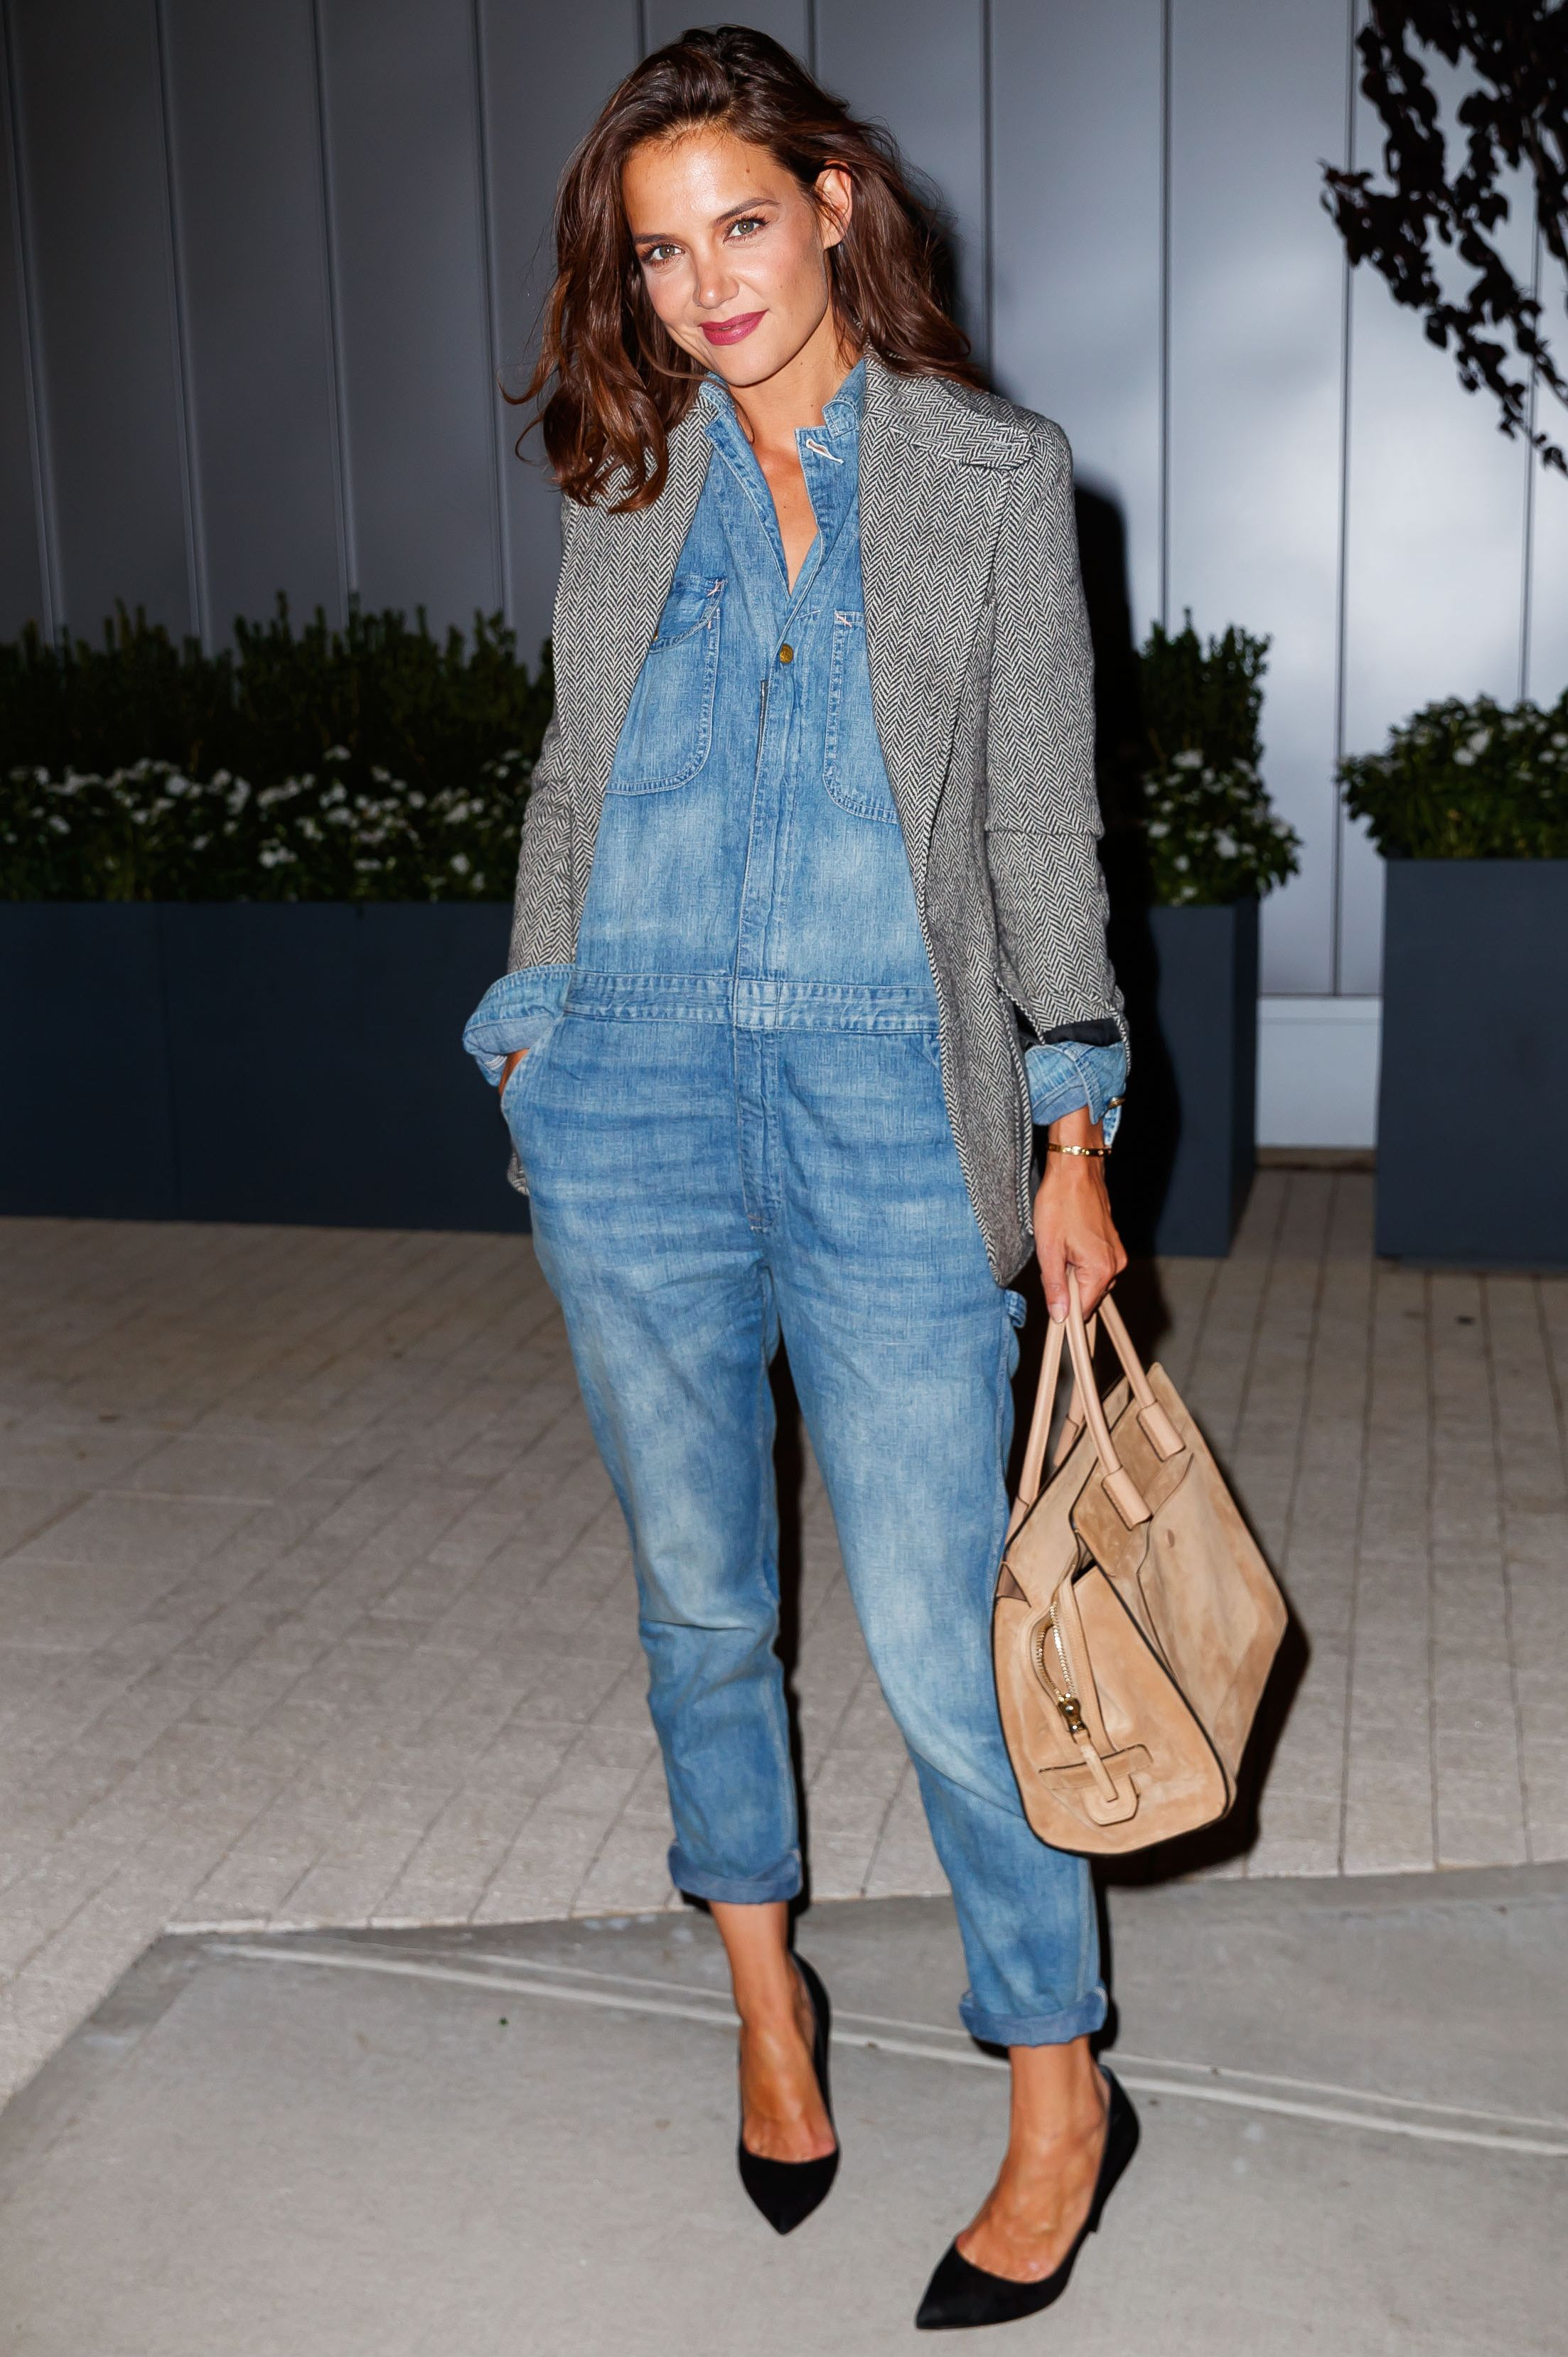 Katie Holmes Turn your Memorial Day denim jumpsuit in an office-appropriate outfit the next day by throwing on a blazer and pair of heels. The outfit suddenly goes from casual to polished.